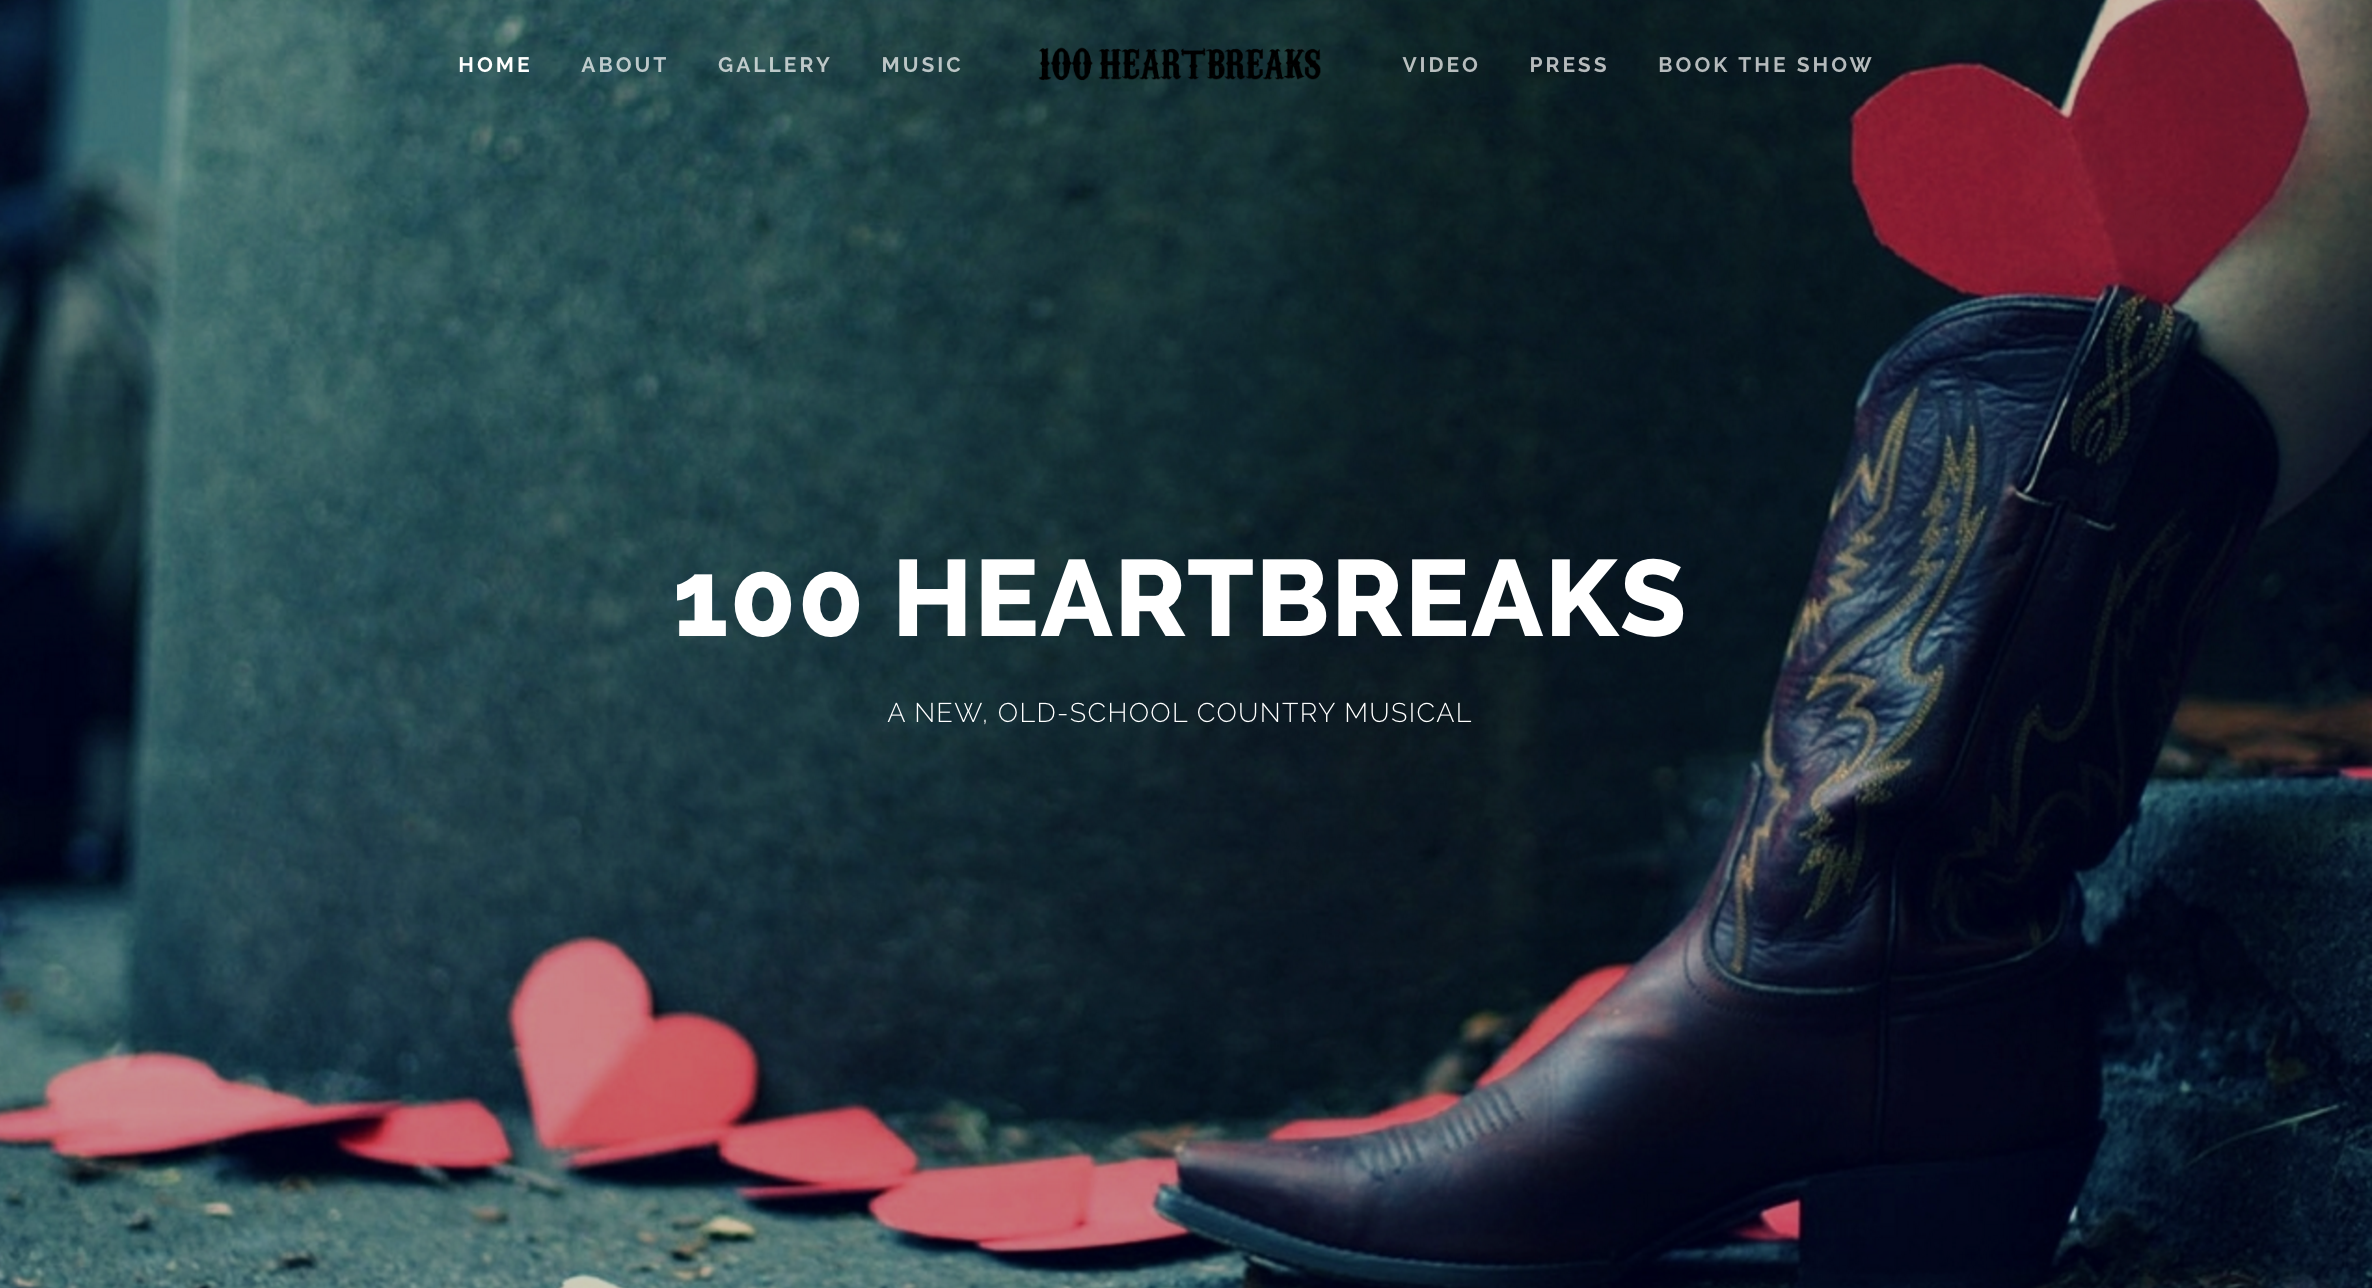 100 Heartbreaks - Website Design and Branding